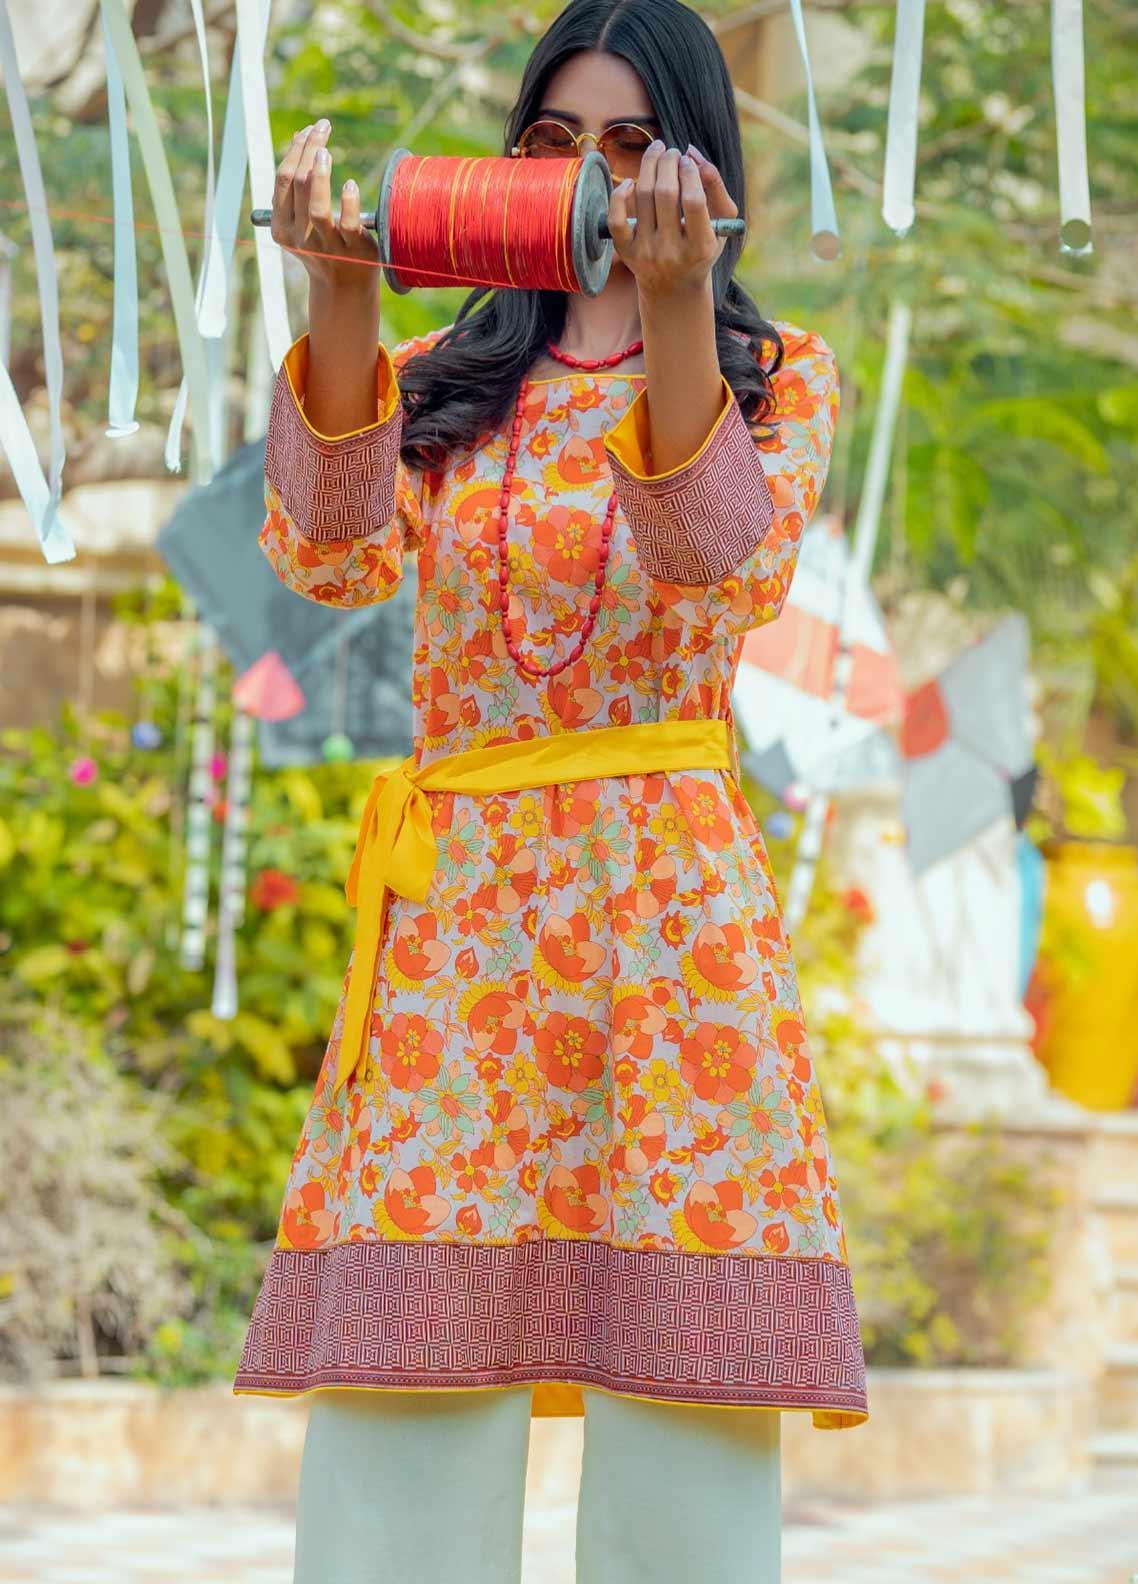 Tarzz Printed Lawn Unstitched Kurties TRZ20SL-2 L20-44 - Spring / Summer Collection